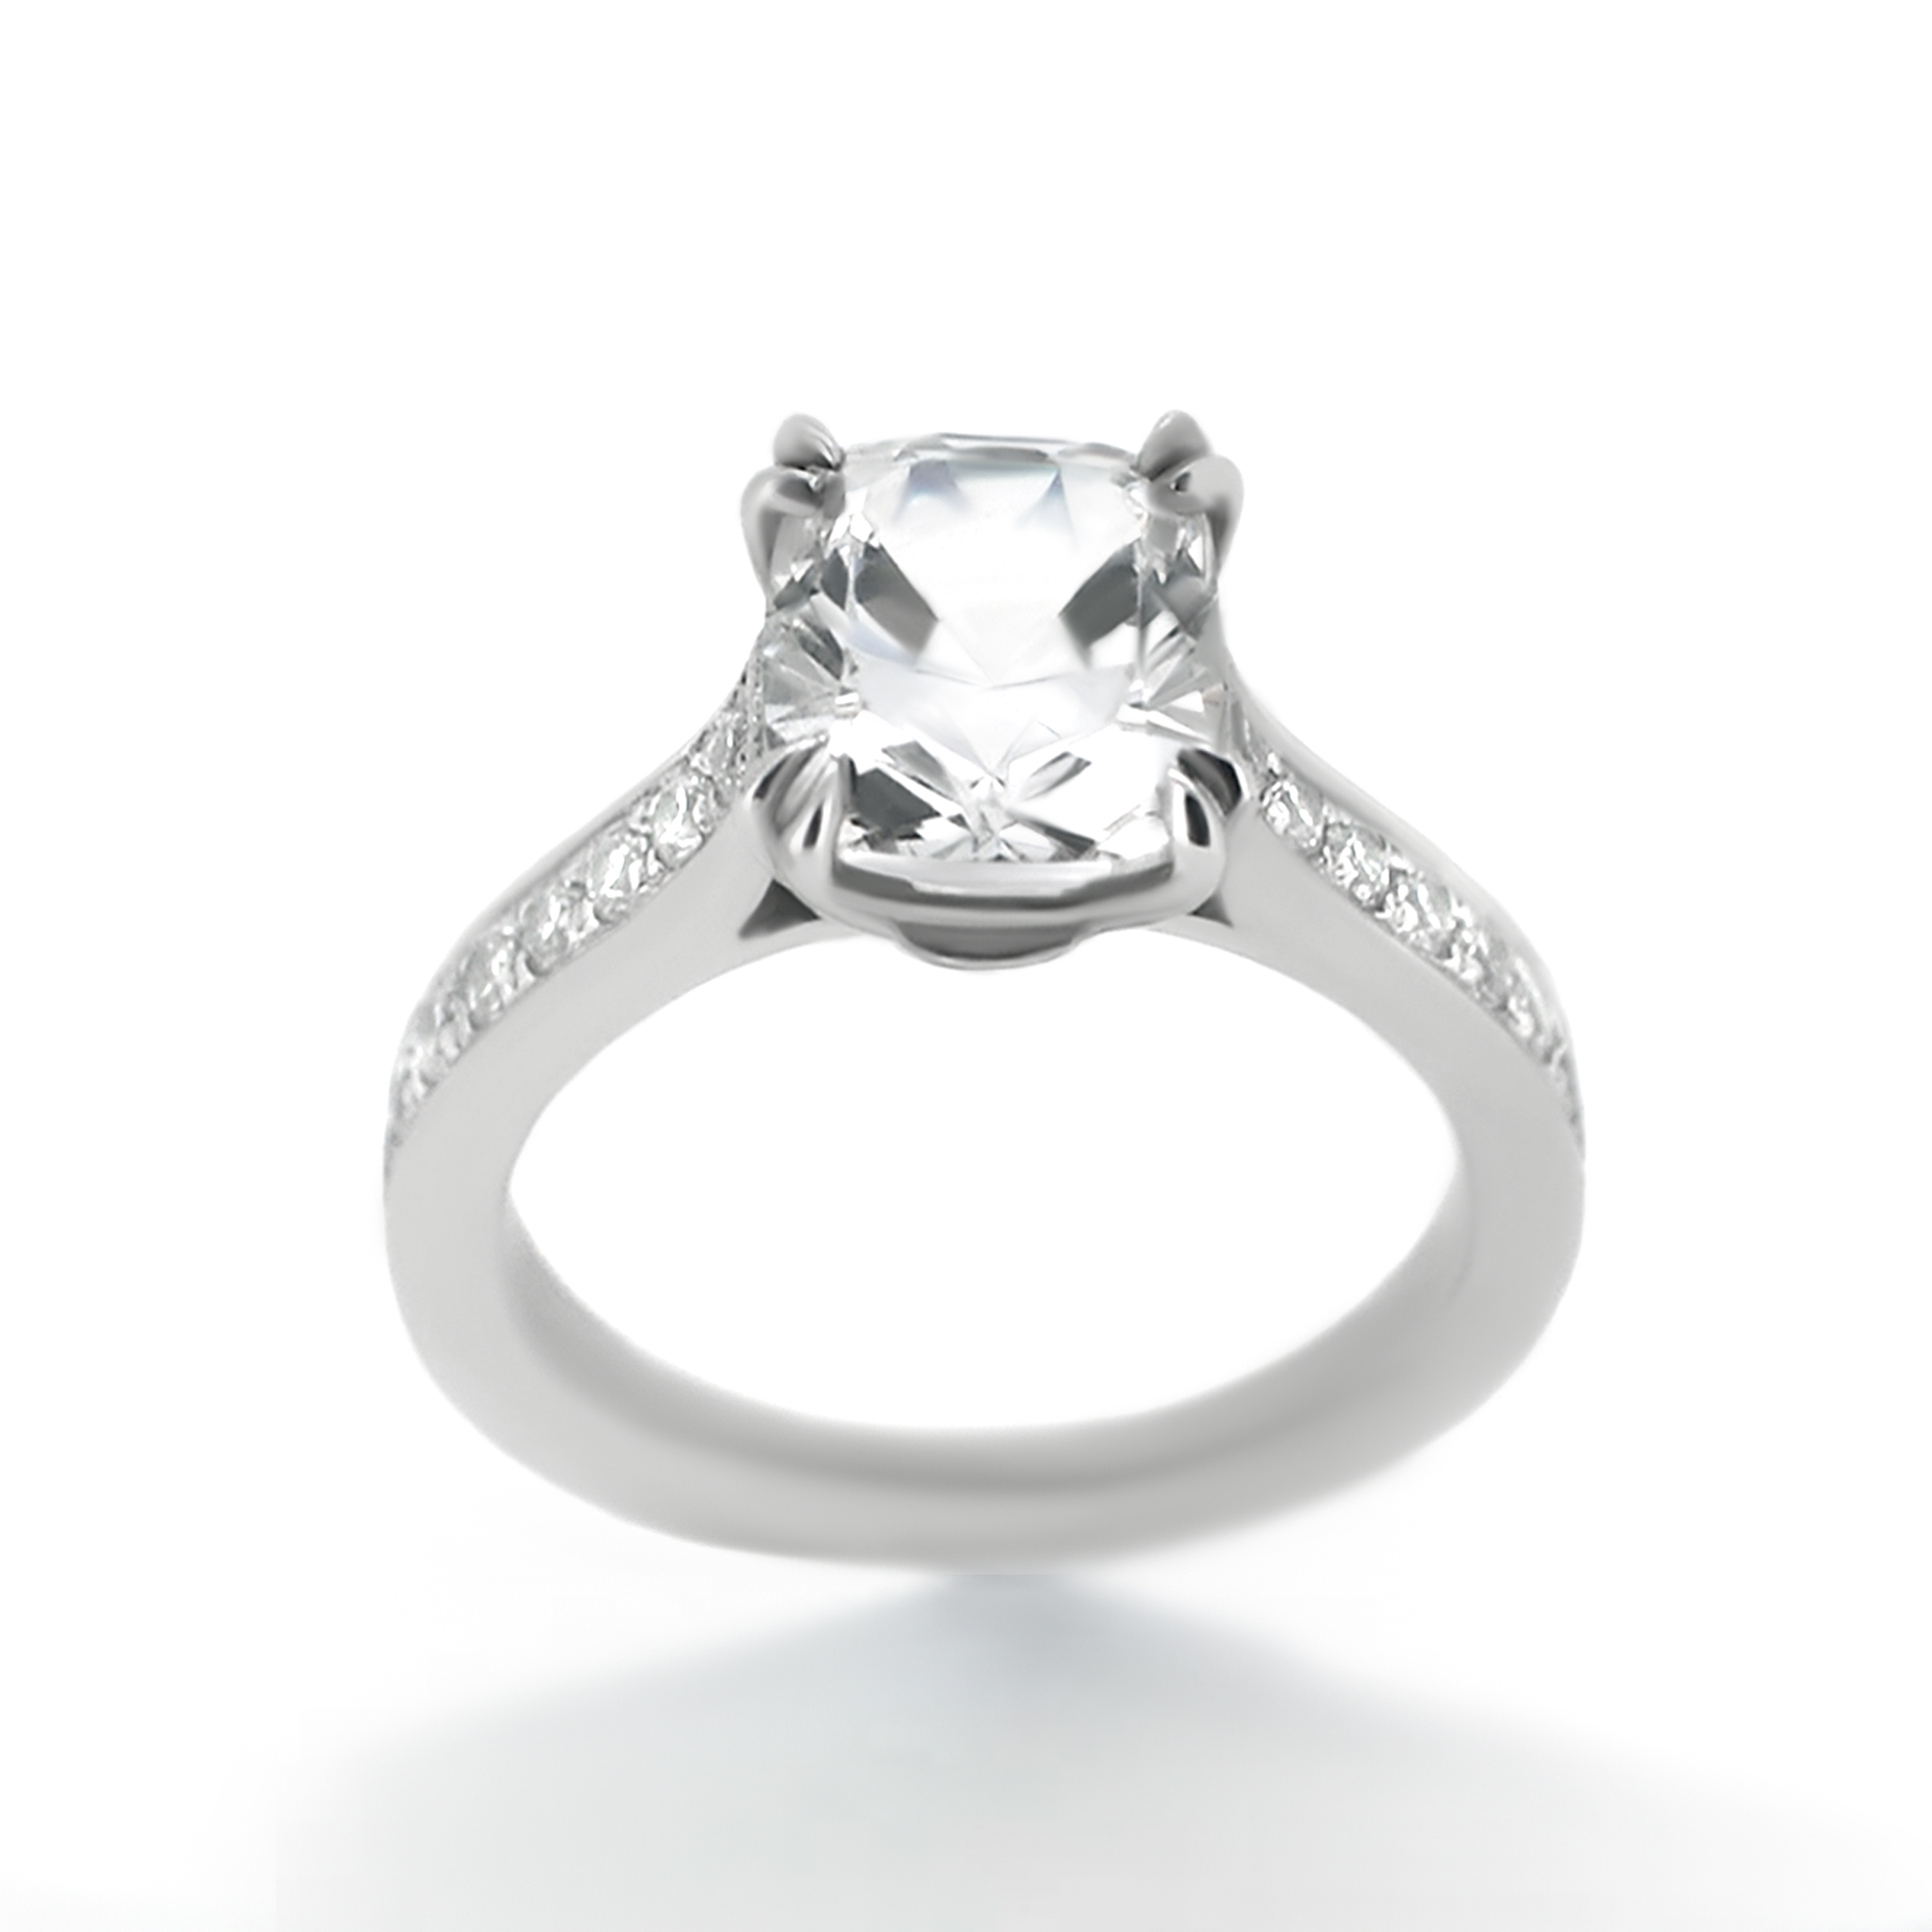 cushion cut diamond ring with side-stones- haywards of hong kong